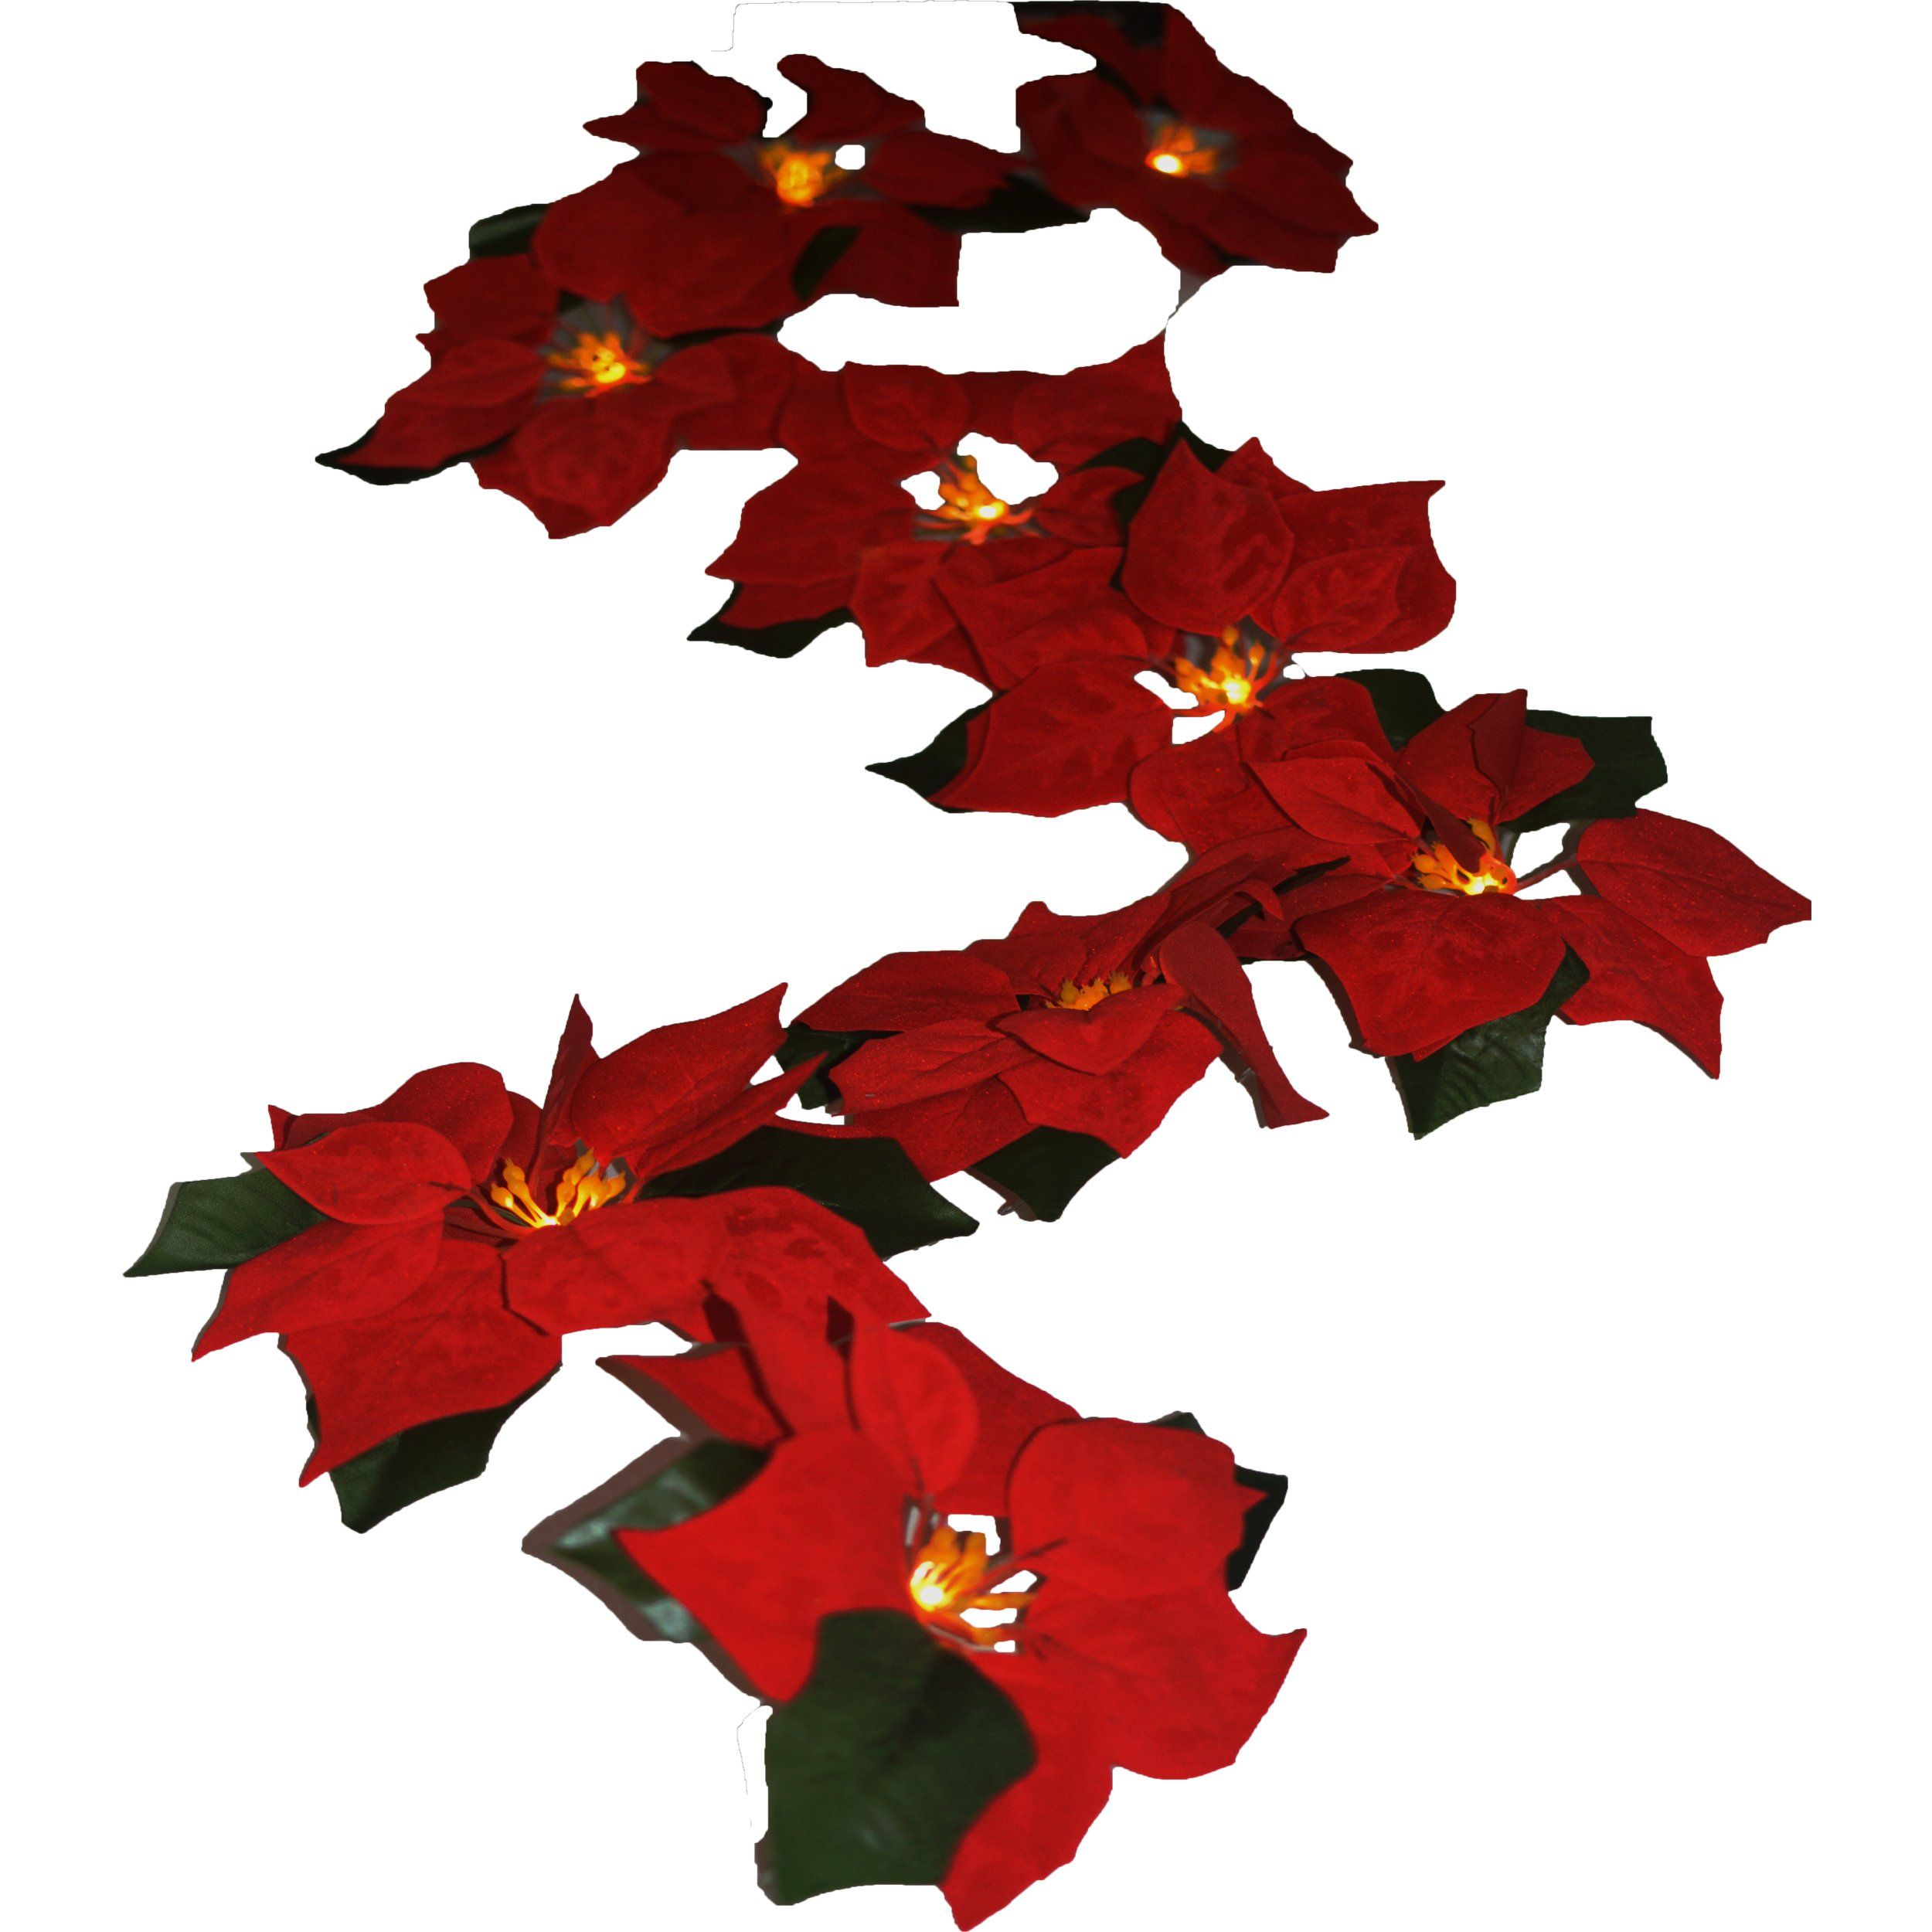 Fanstek 2aa Battery Led Lighted Red Poinsettia Garland With Holly